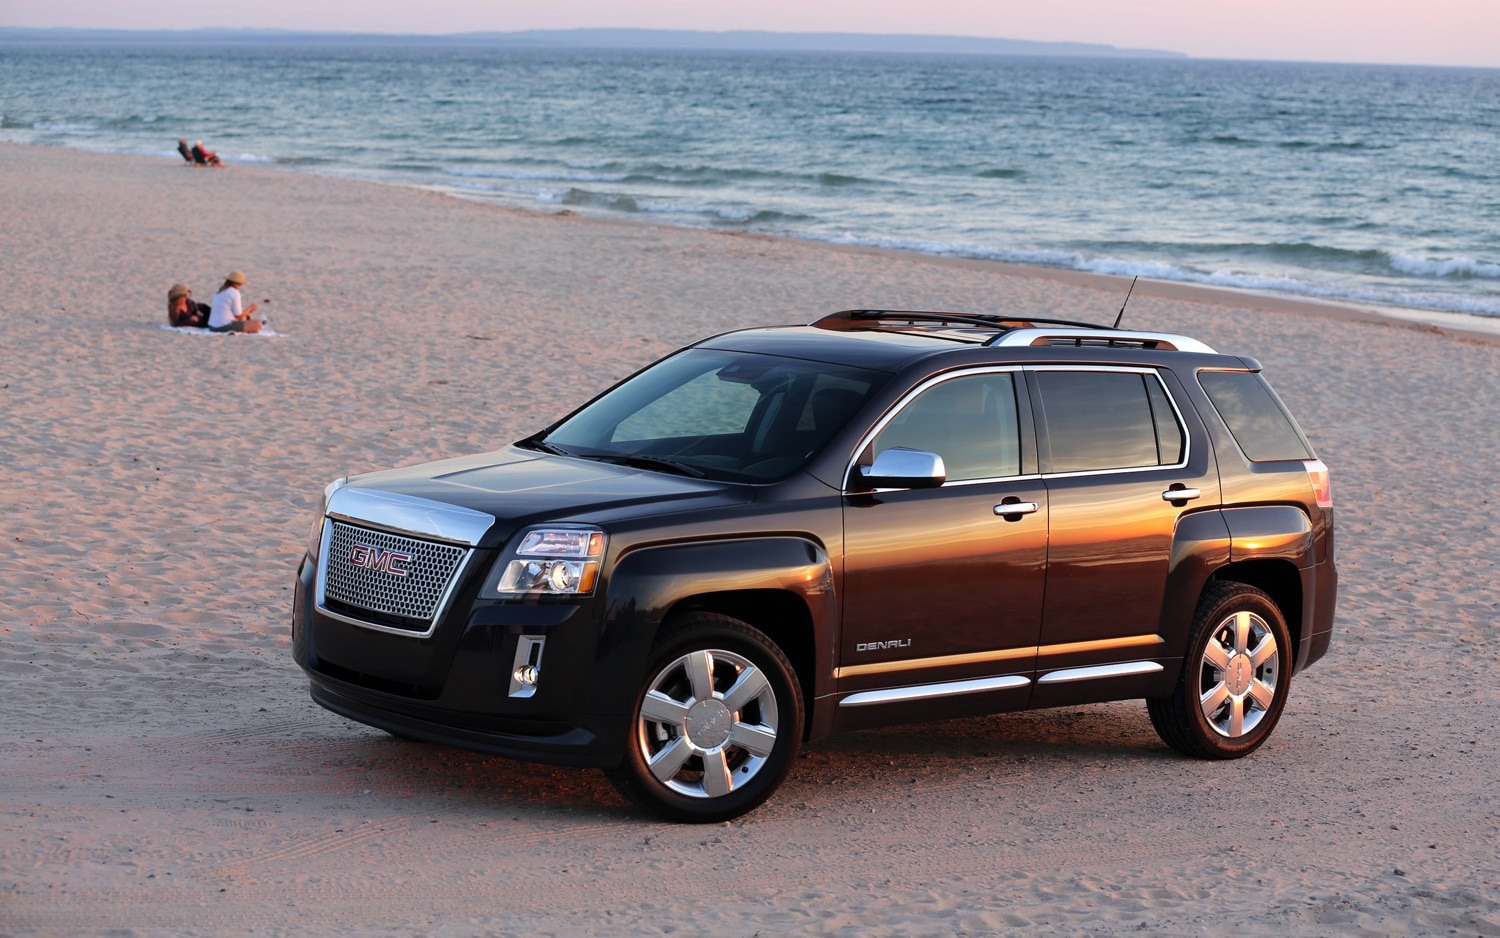 rating suv reviews gmc denali trend fwd view cars and motor side terrain